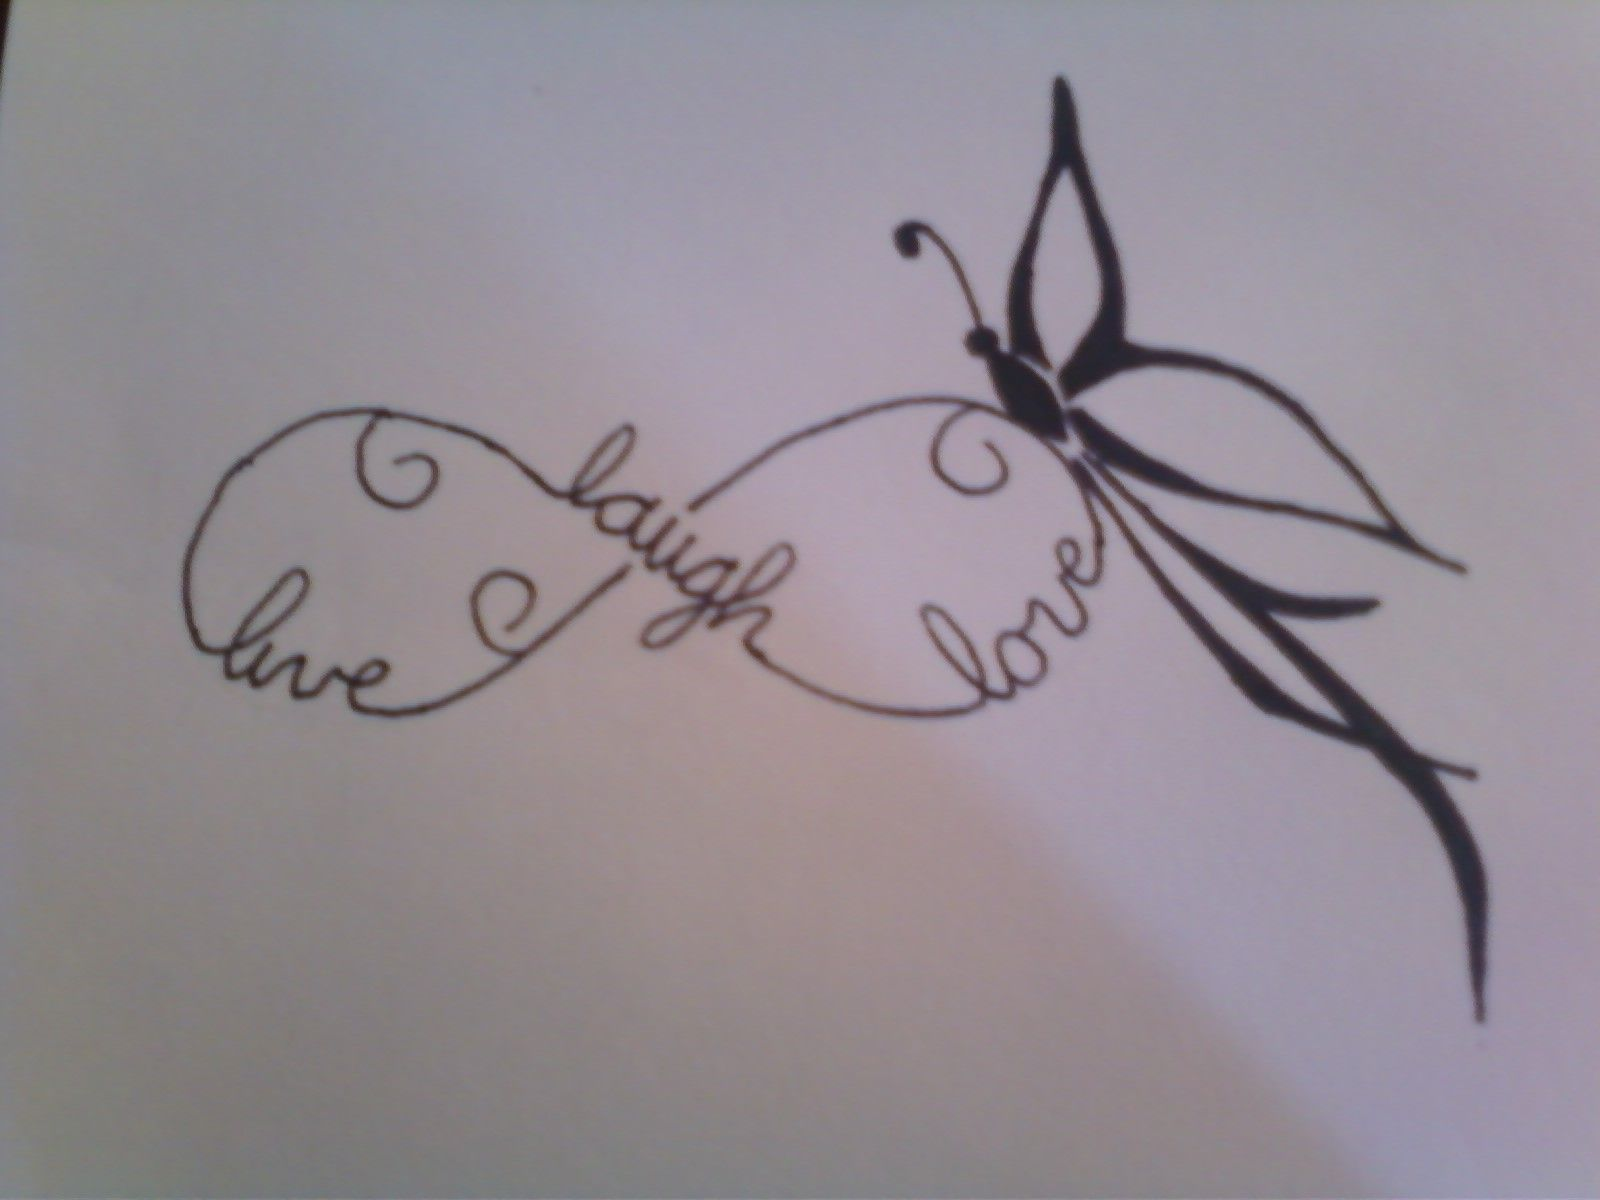 Name tattoo good idea i love the butterfly may want to use that with another tattoo